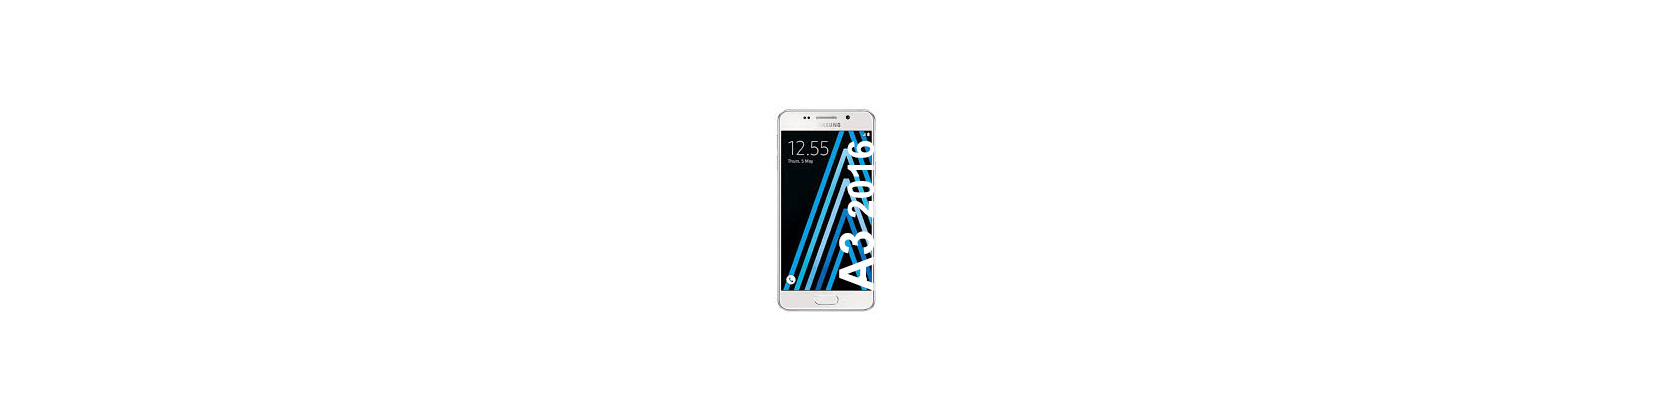 Samsung A3 2016 A310F Components & Accessories